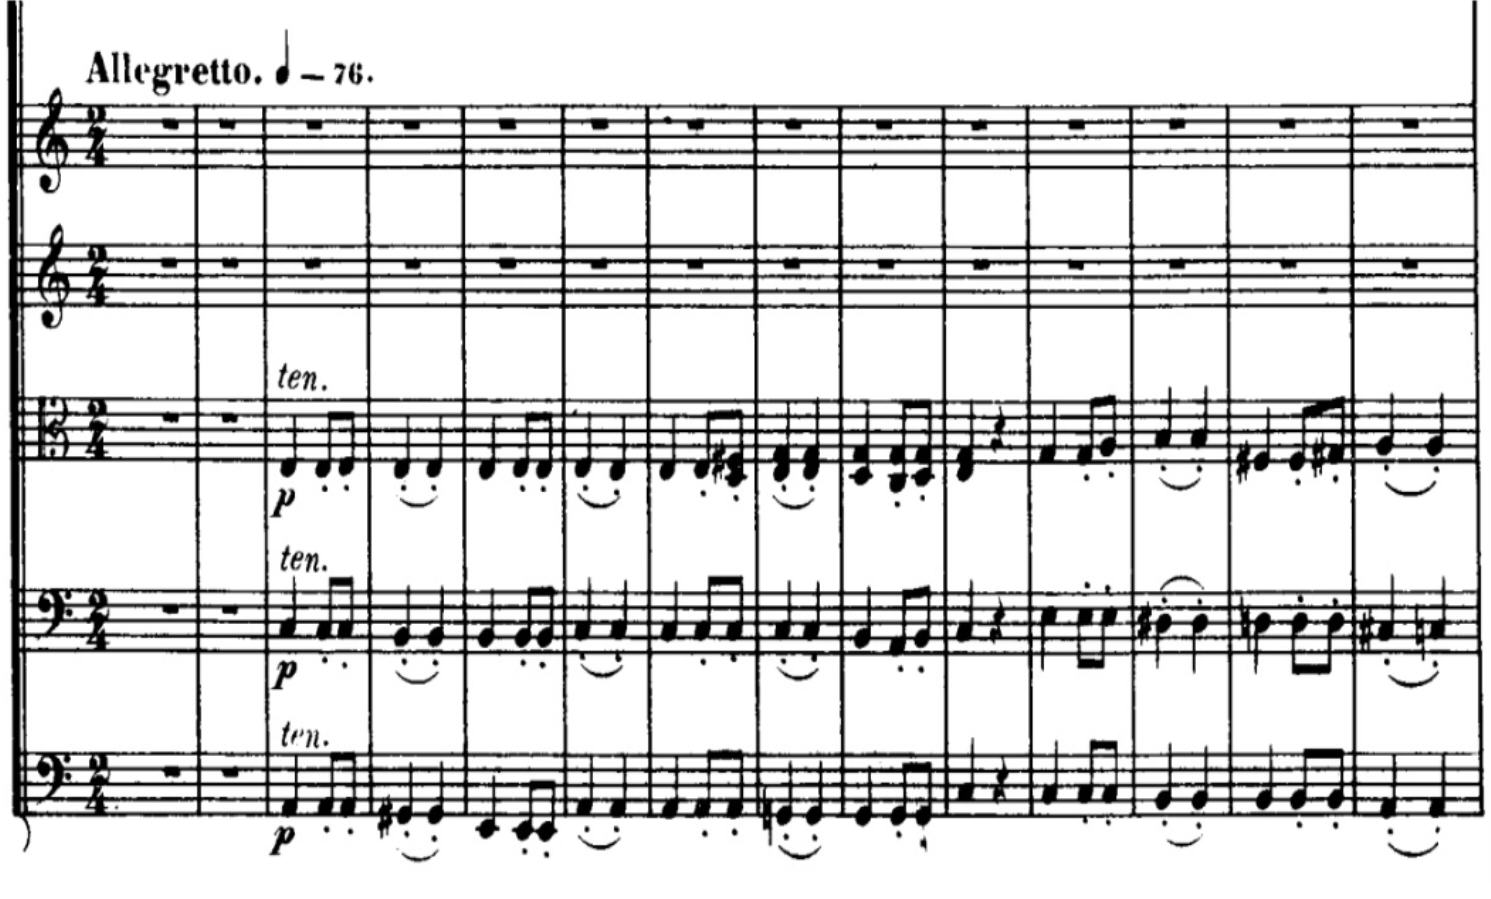 beethovens seventh symphony analysis Buy the allegretto from beethovens 7th symphony by l at jwpeppercom concert band sheet music arranged in 2013 this arrangement of beethovens work enc.